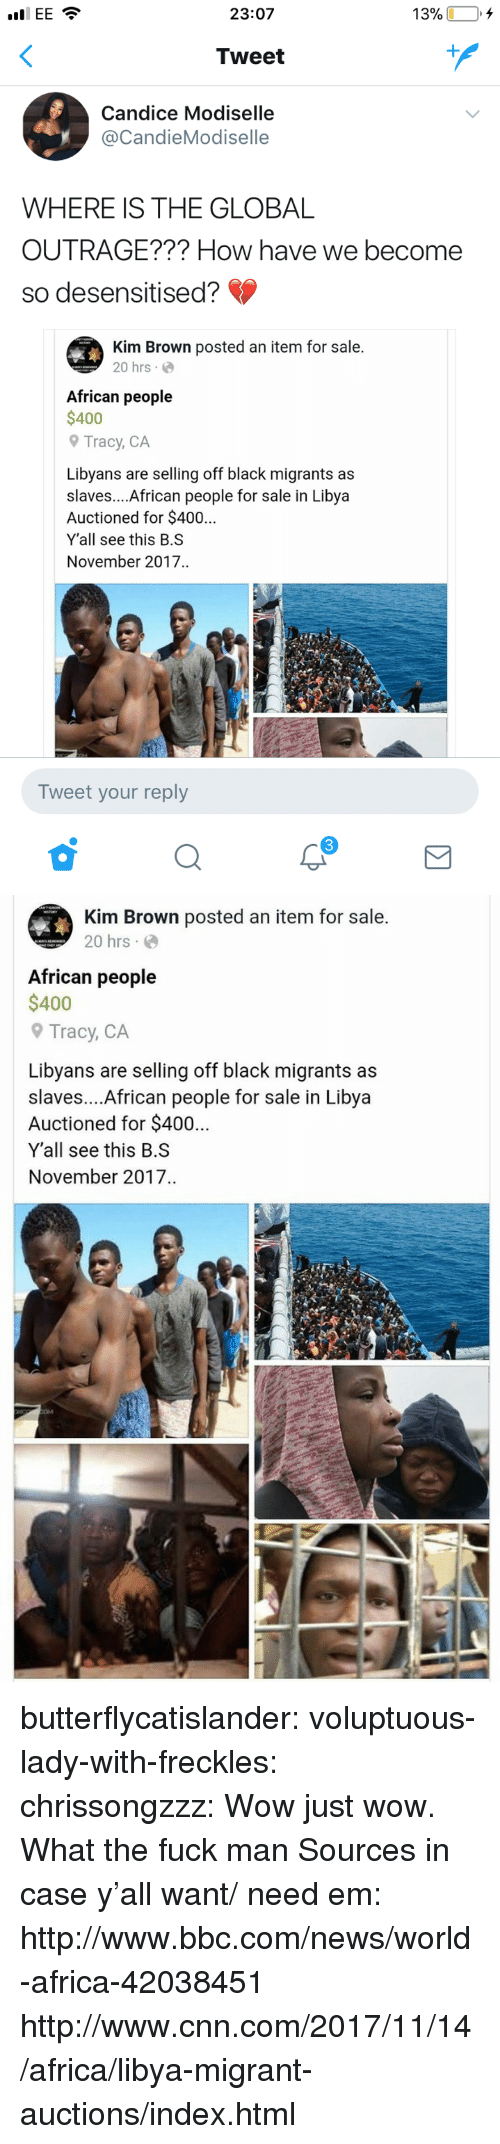 Fuck Man: 23:07  13%  +  Tweet  Candice Modiselle  @CandieModiselle  WHERE IS THE GLOBAL  OUTRAGE??? How have we become  so desensitised?  Kim Brown posted an item for sale.  20 hrs.  African people  $400  Tracy, CA  Libyans are selling off black migrants as  slaves....African people for sale in Libya  Auctioned for $40..  Y'all see this B.S  November 2017..  Tweet your reply  3   Kim Brown posted an item for sale.  20 hrs  African people  $400  9 Tracy, CA  Libyans are selling off black migrants as  slaves....African people for sale in Libya  Auctioned for $400  Y'all see this B.S  November 2017  CM butterflycatislander:  voluptuous-lady-with-freckles:  chrissongzzz:  Wow just wow.  What the fuck man  Sources in case y'all want/ need em: http://www.bbc.com/news/world-africa-42038451 http://www.cnn.com/2017/11/14/africa/libya-migrant-auctions/index.html